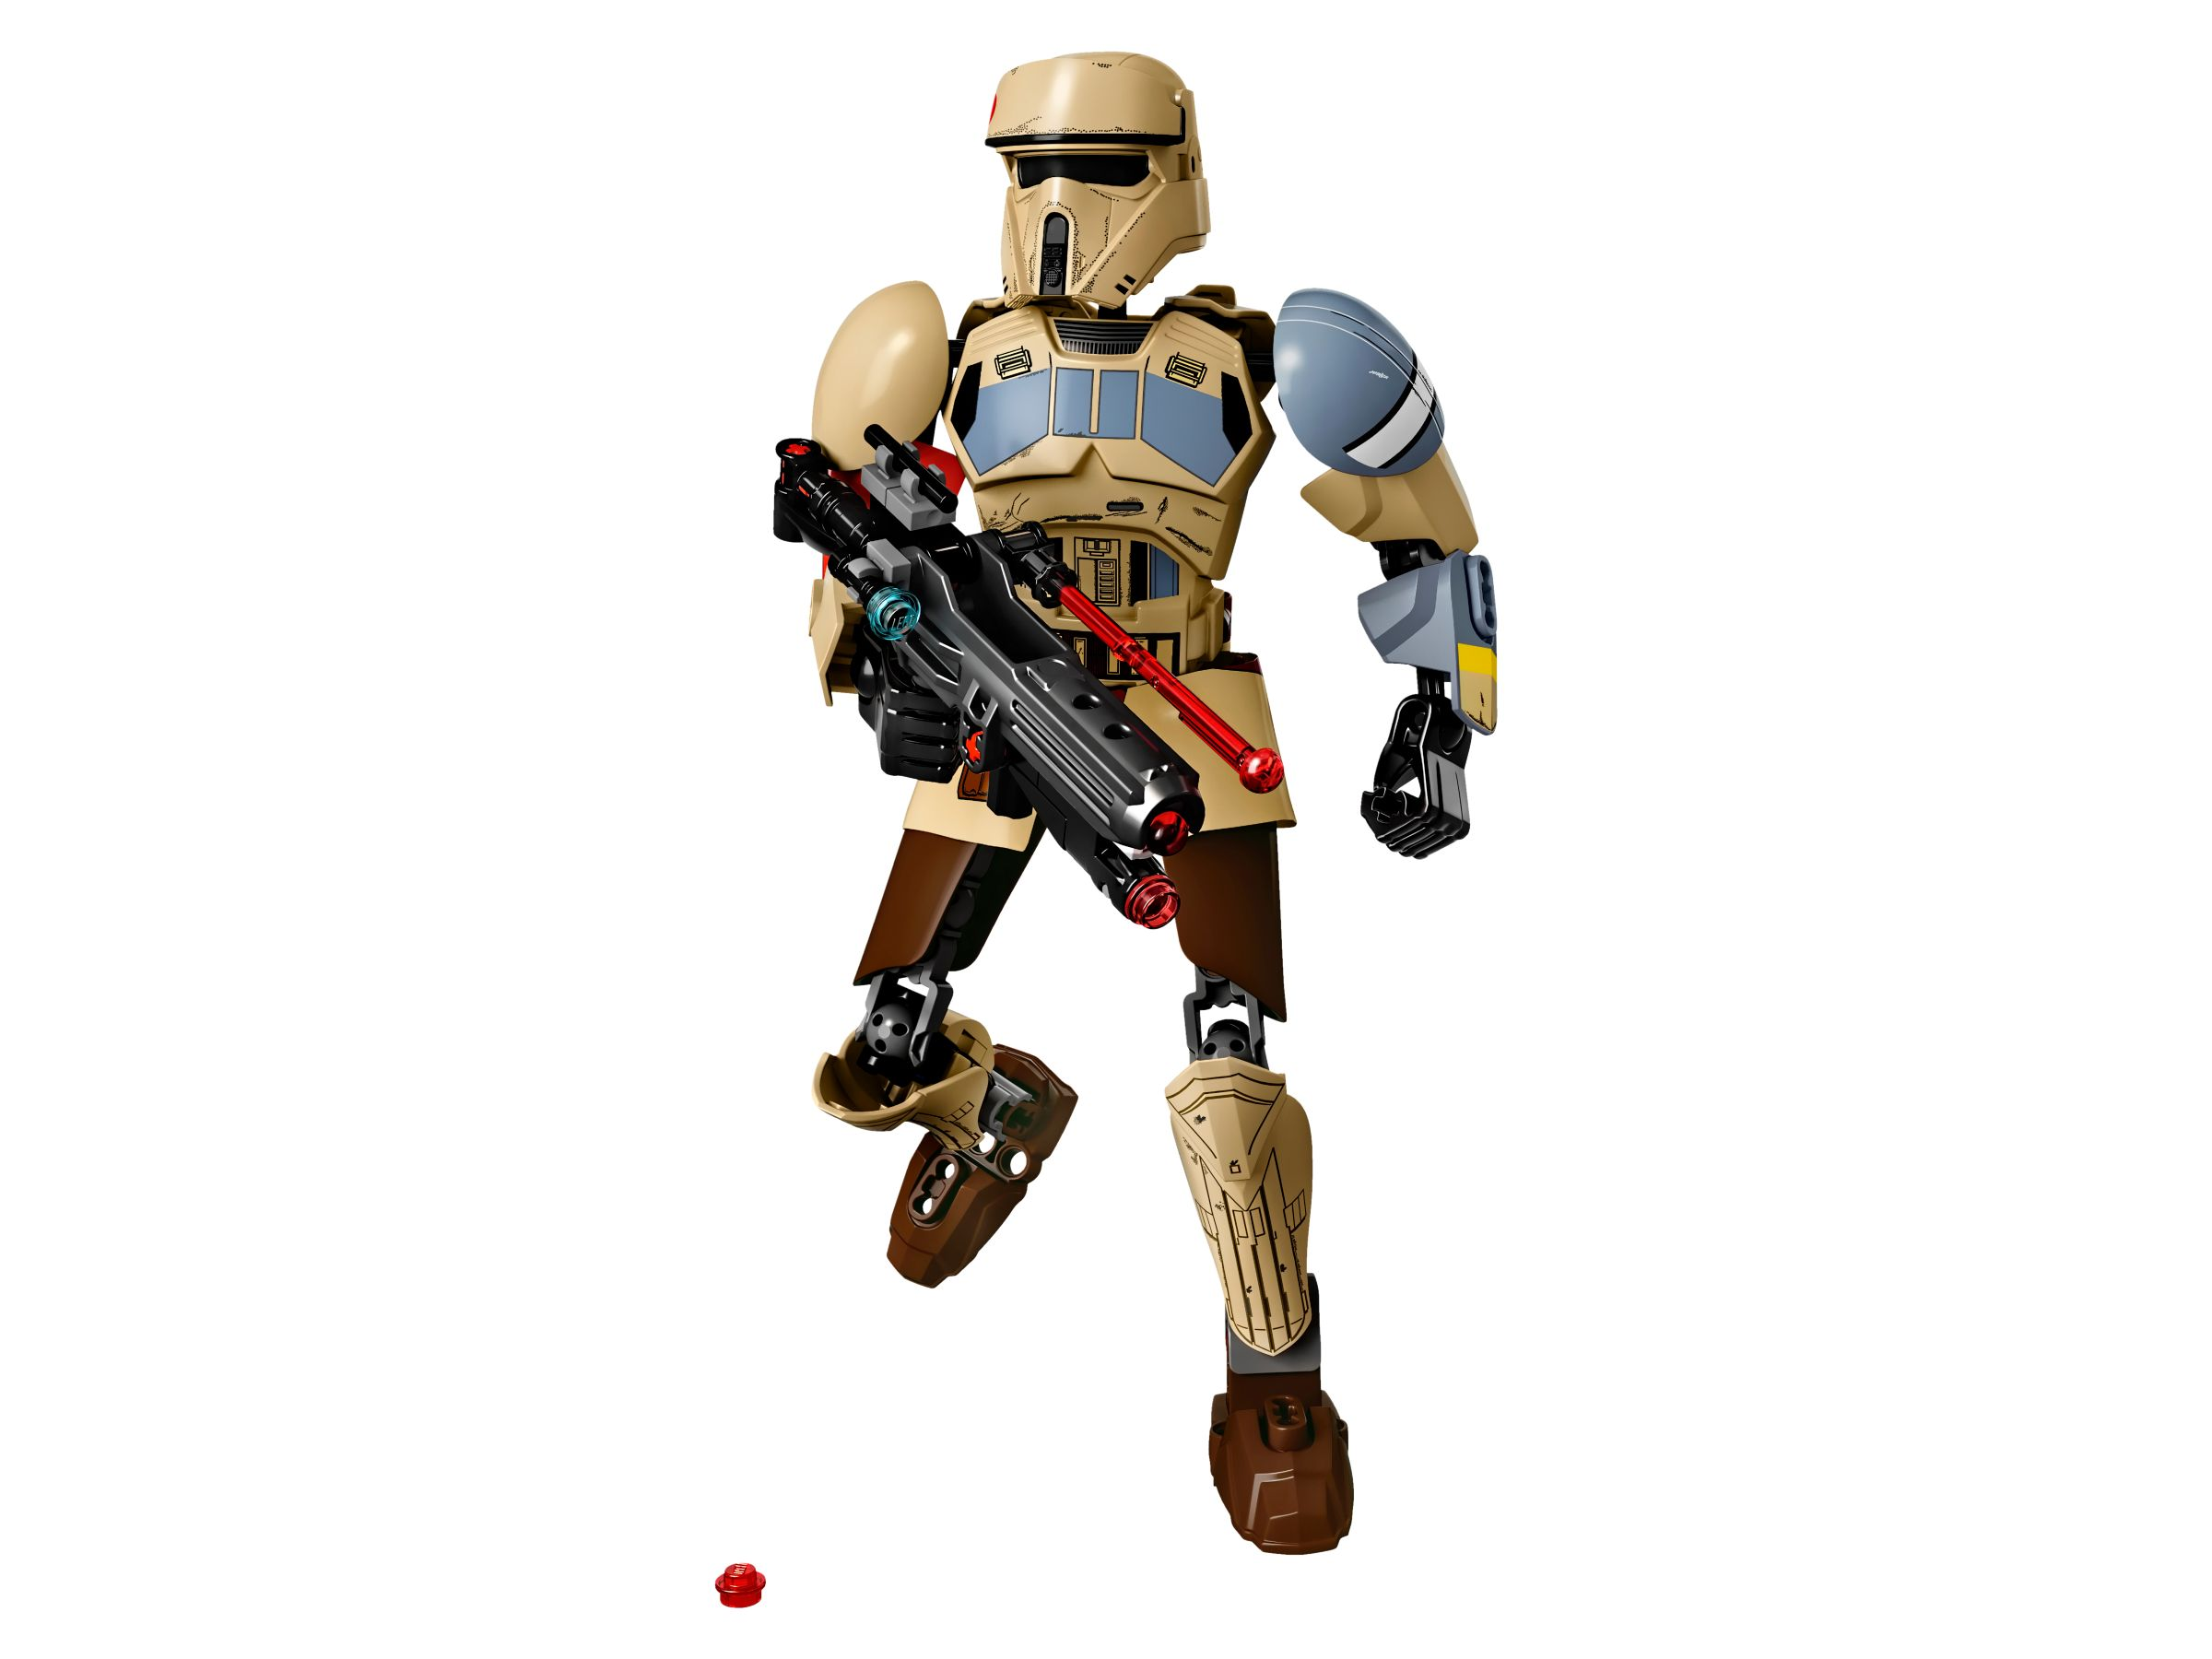 lego 75523 scarif stormtrooper star wars buildable figures 2017 shore trooper brickmerge. Black Bedroom Furniture Sets. Home Design Ideas